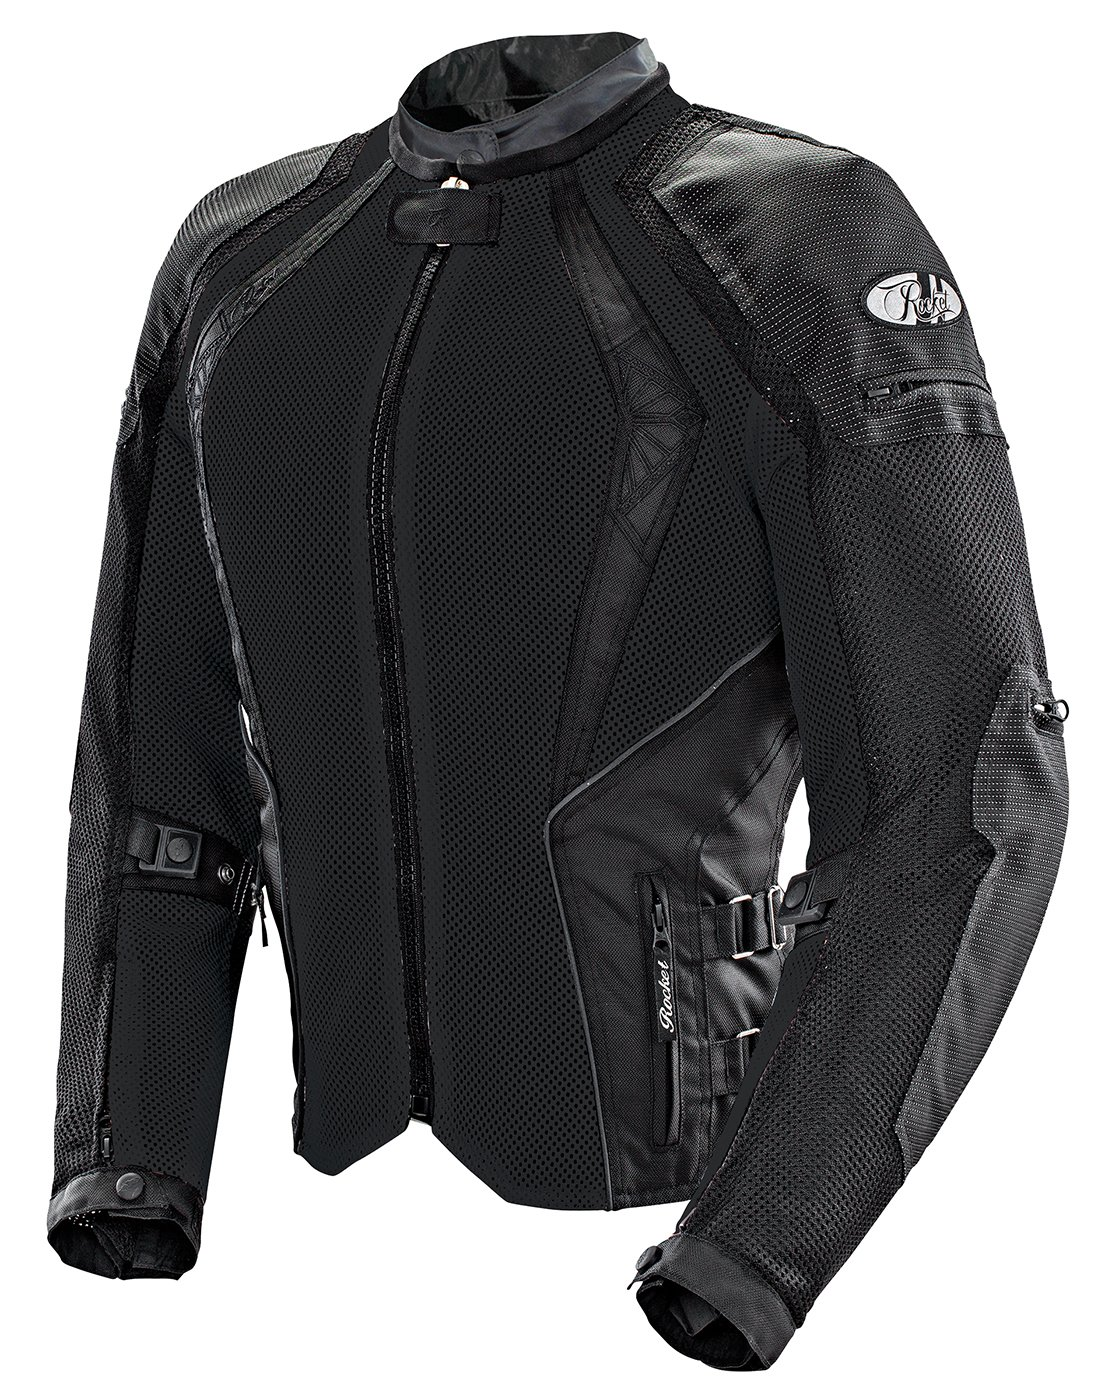 Joe Rocket Cleo Elite Women's Mesh Motorcycle Jacket (Black, 1 Diva)